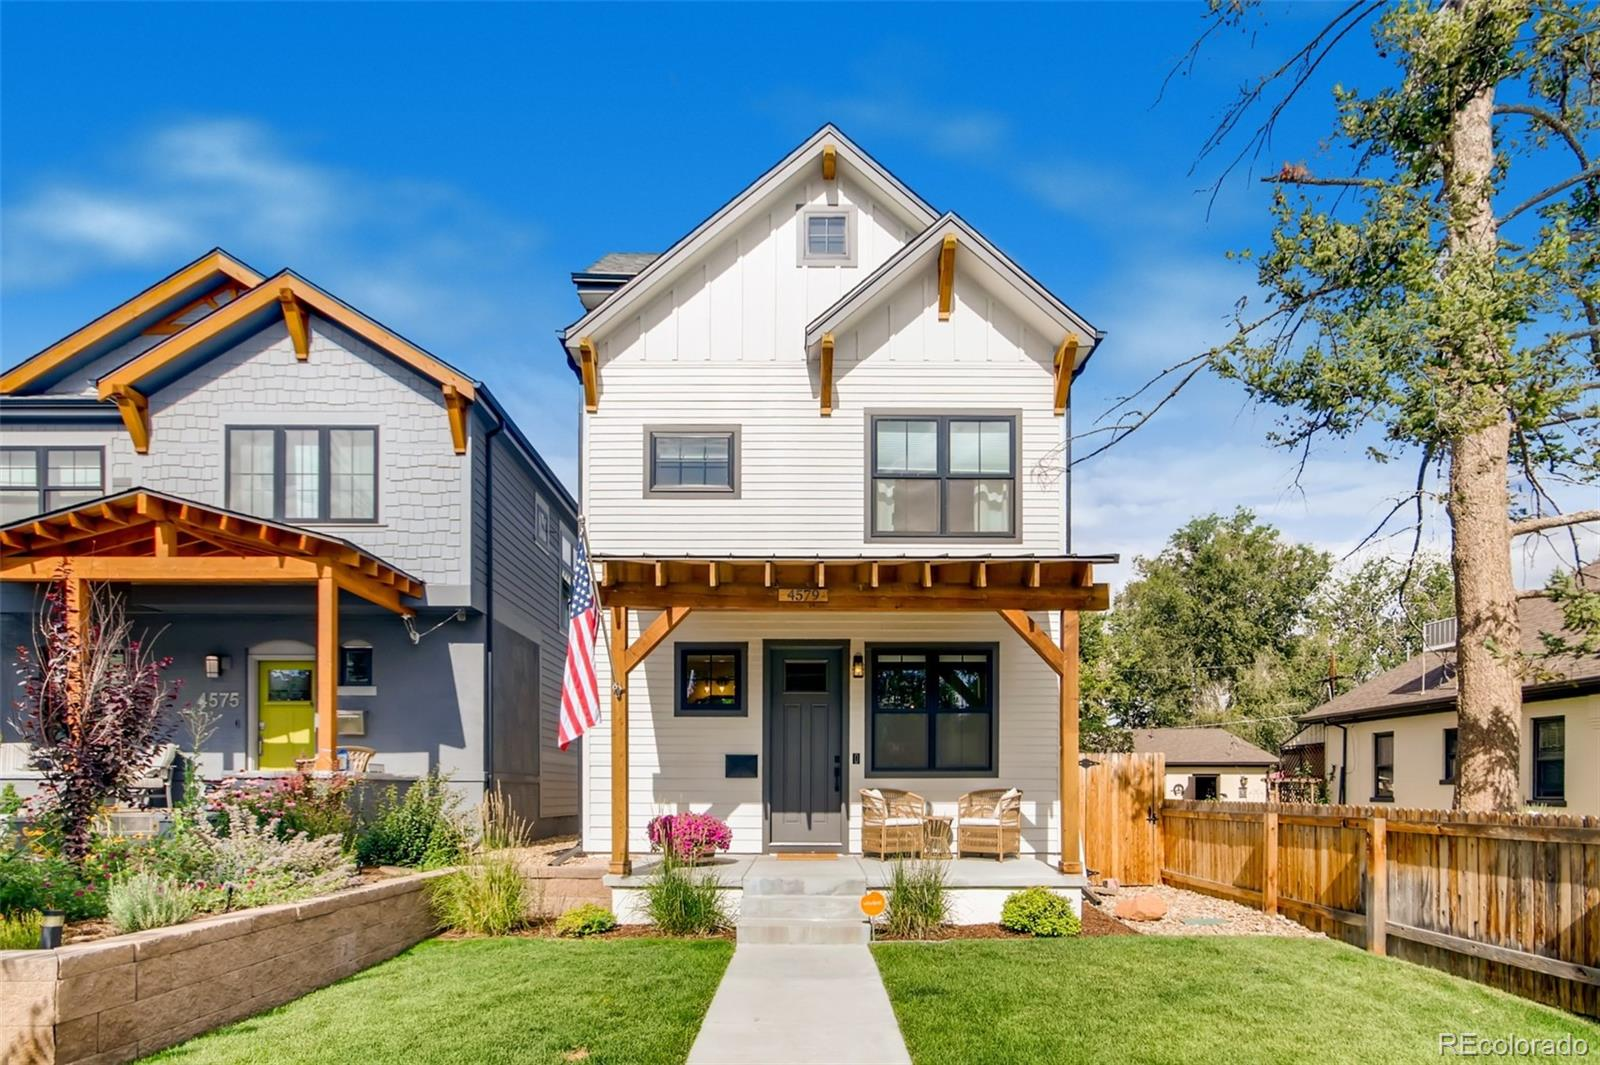 MLS# 7320959 - 33 - 4579 Vrain Street, Denver, CO 80212